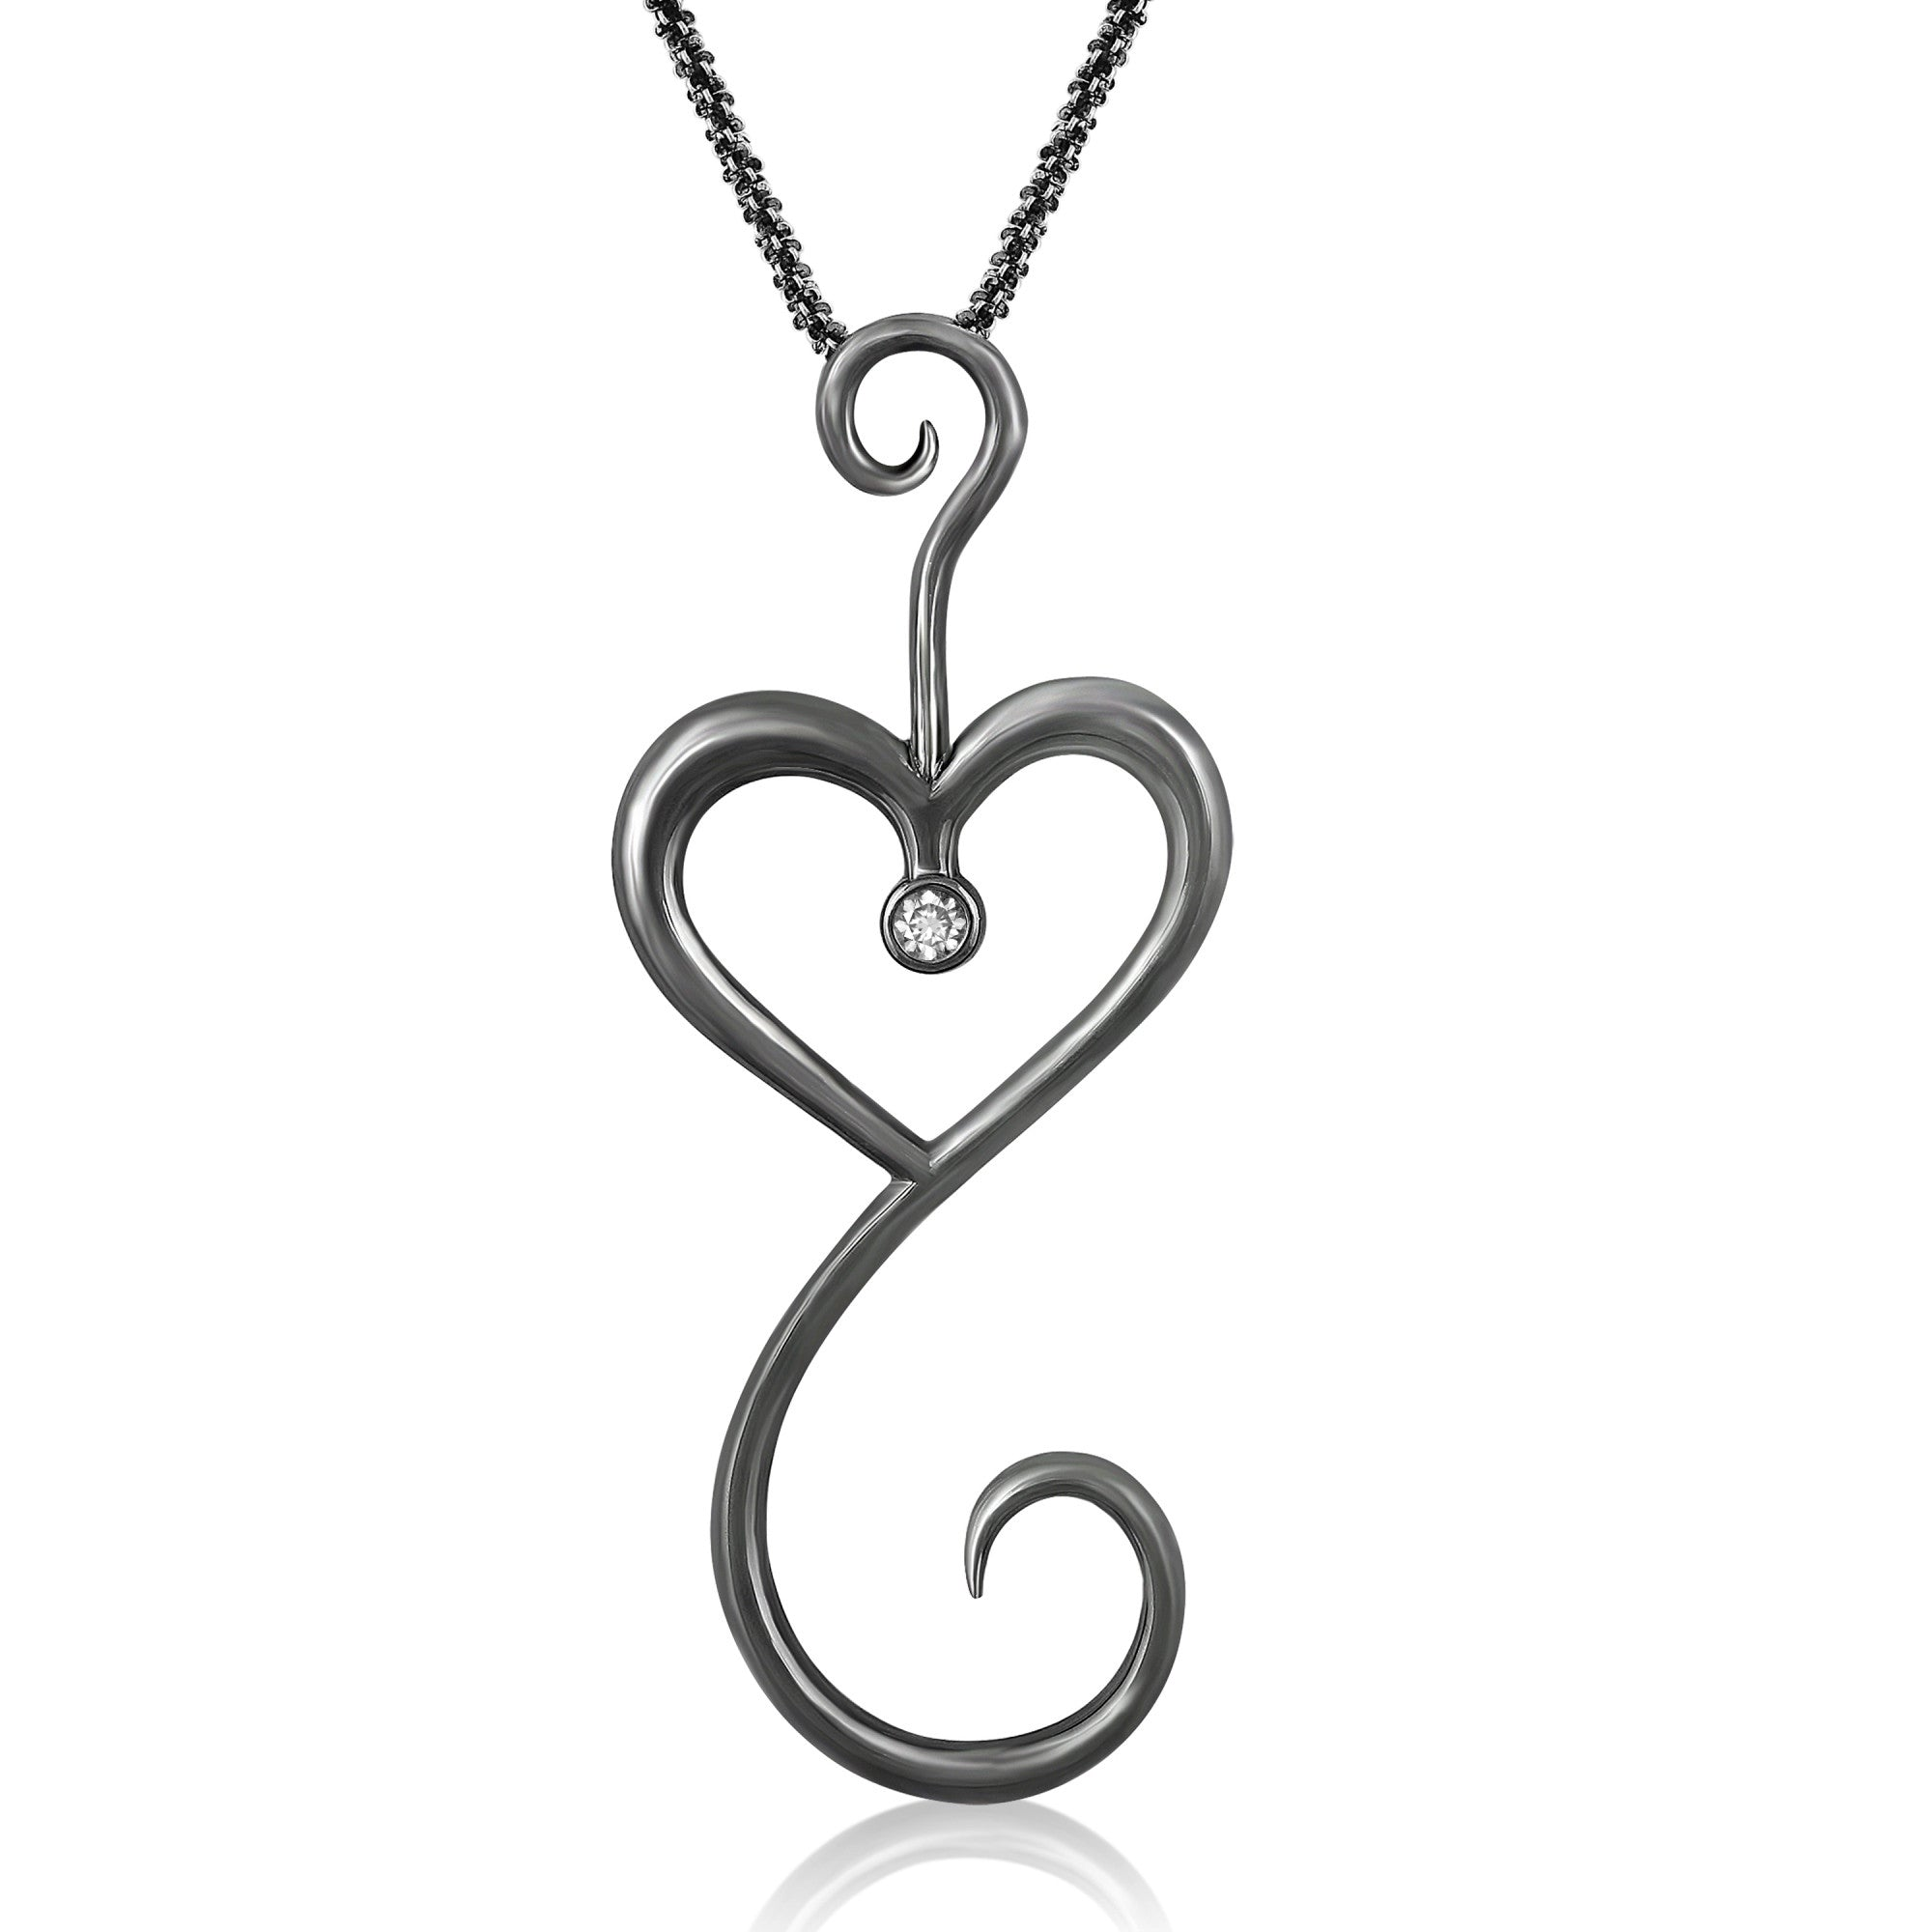 Intrikit Heart - Solid Sterling Silver .925 with a Black Rhodium finish and a 3mm White Sapphire Center Stone